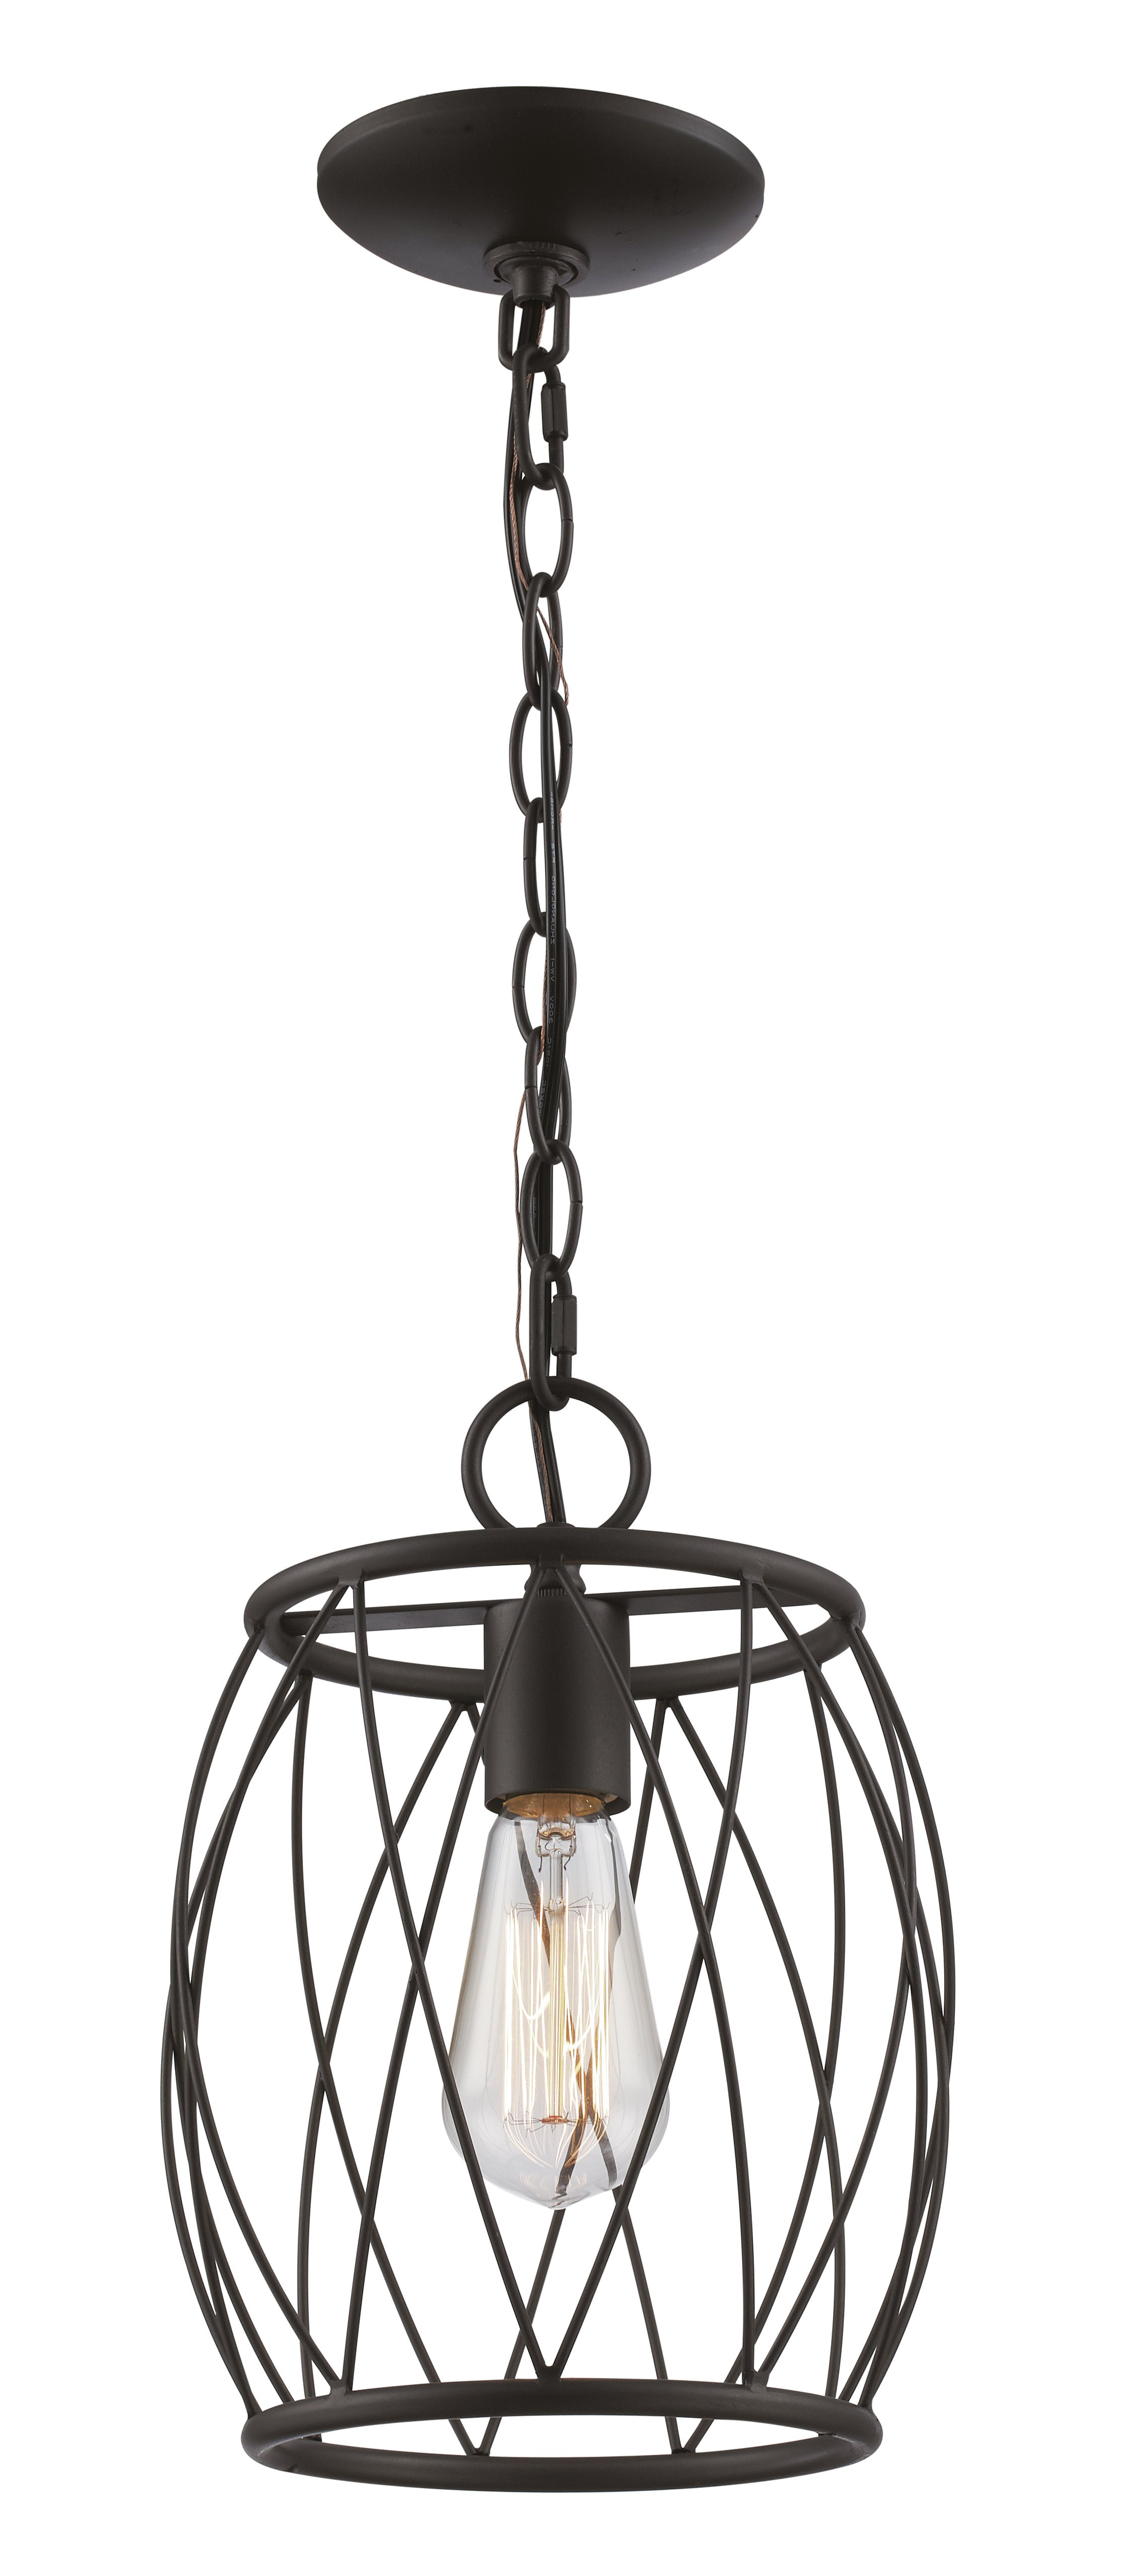 Irwin 1 Light Single Globe Pendants With Regard To Recent Wrought Studio Poynter 1 Light Single Cylinder Pendant (View 9 of 20)